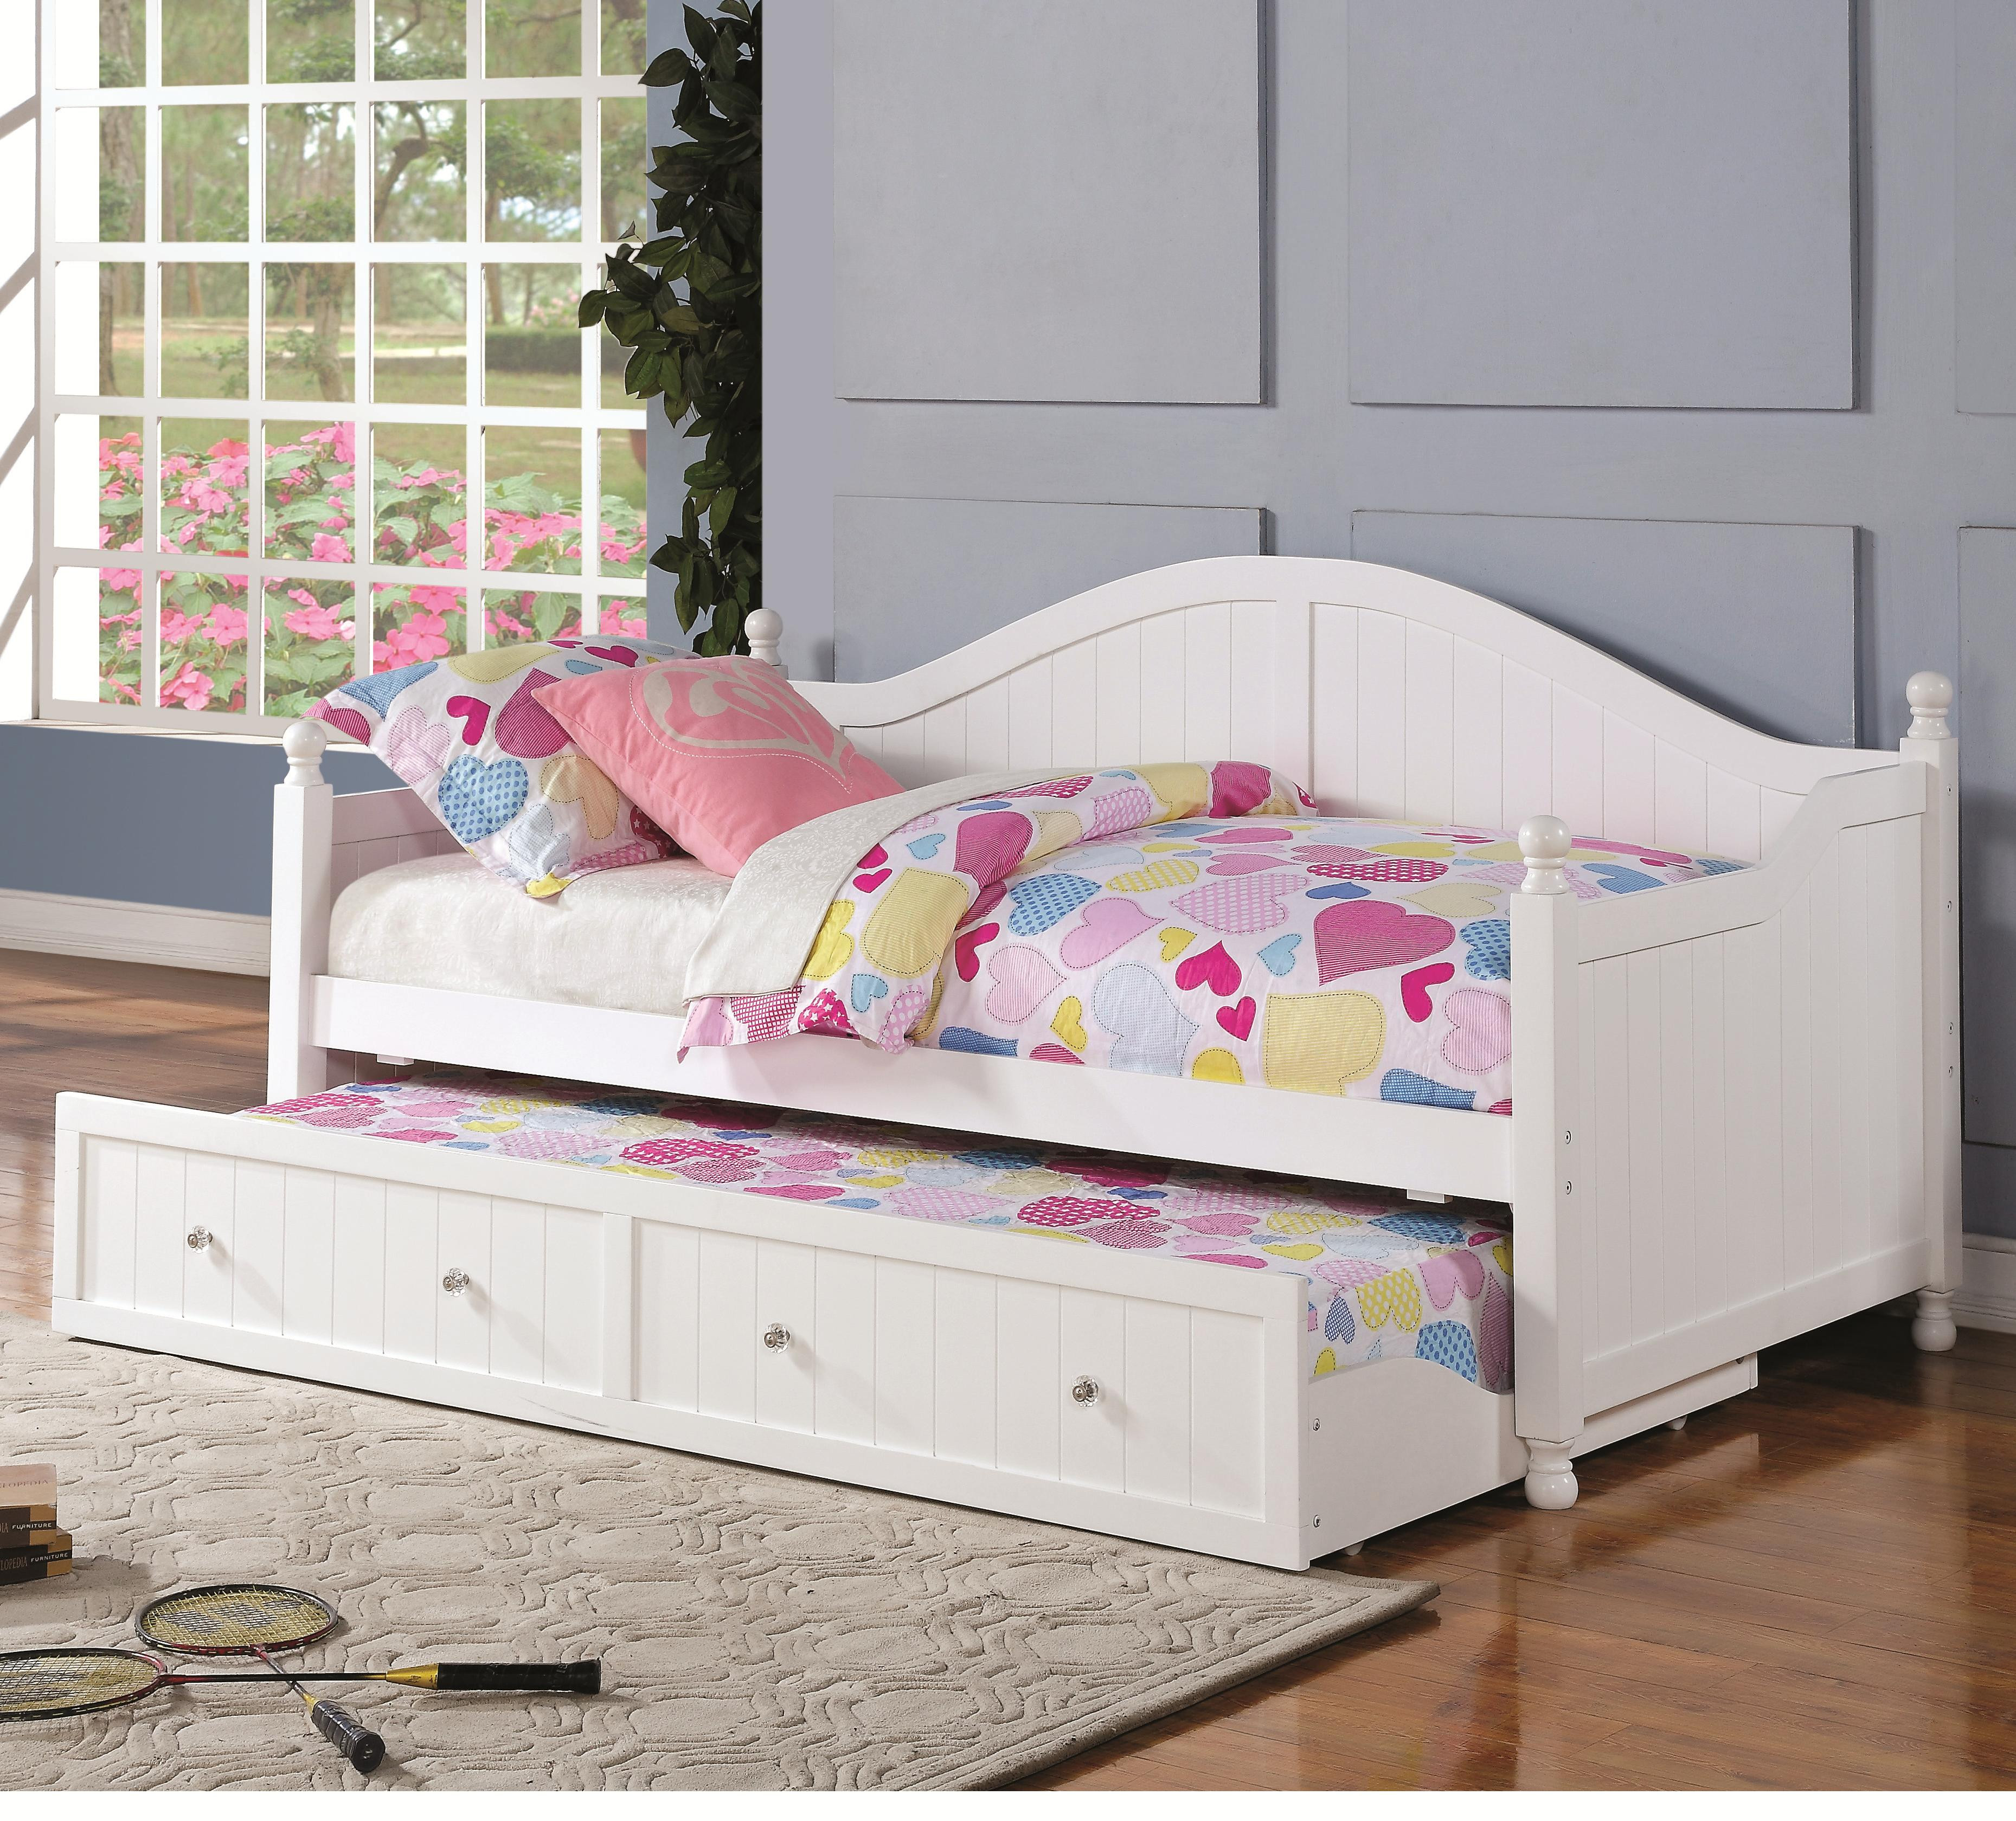 Bedroom Set with Mattress Included Fresh Marlo Daybed with Trundle